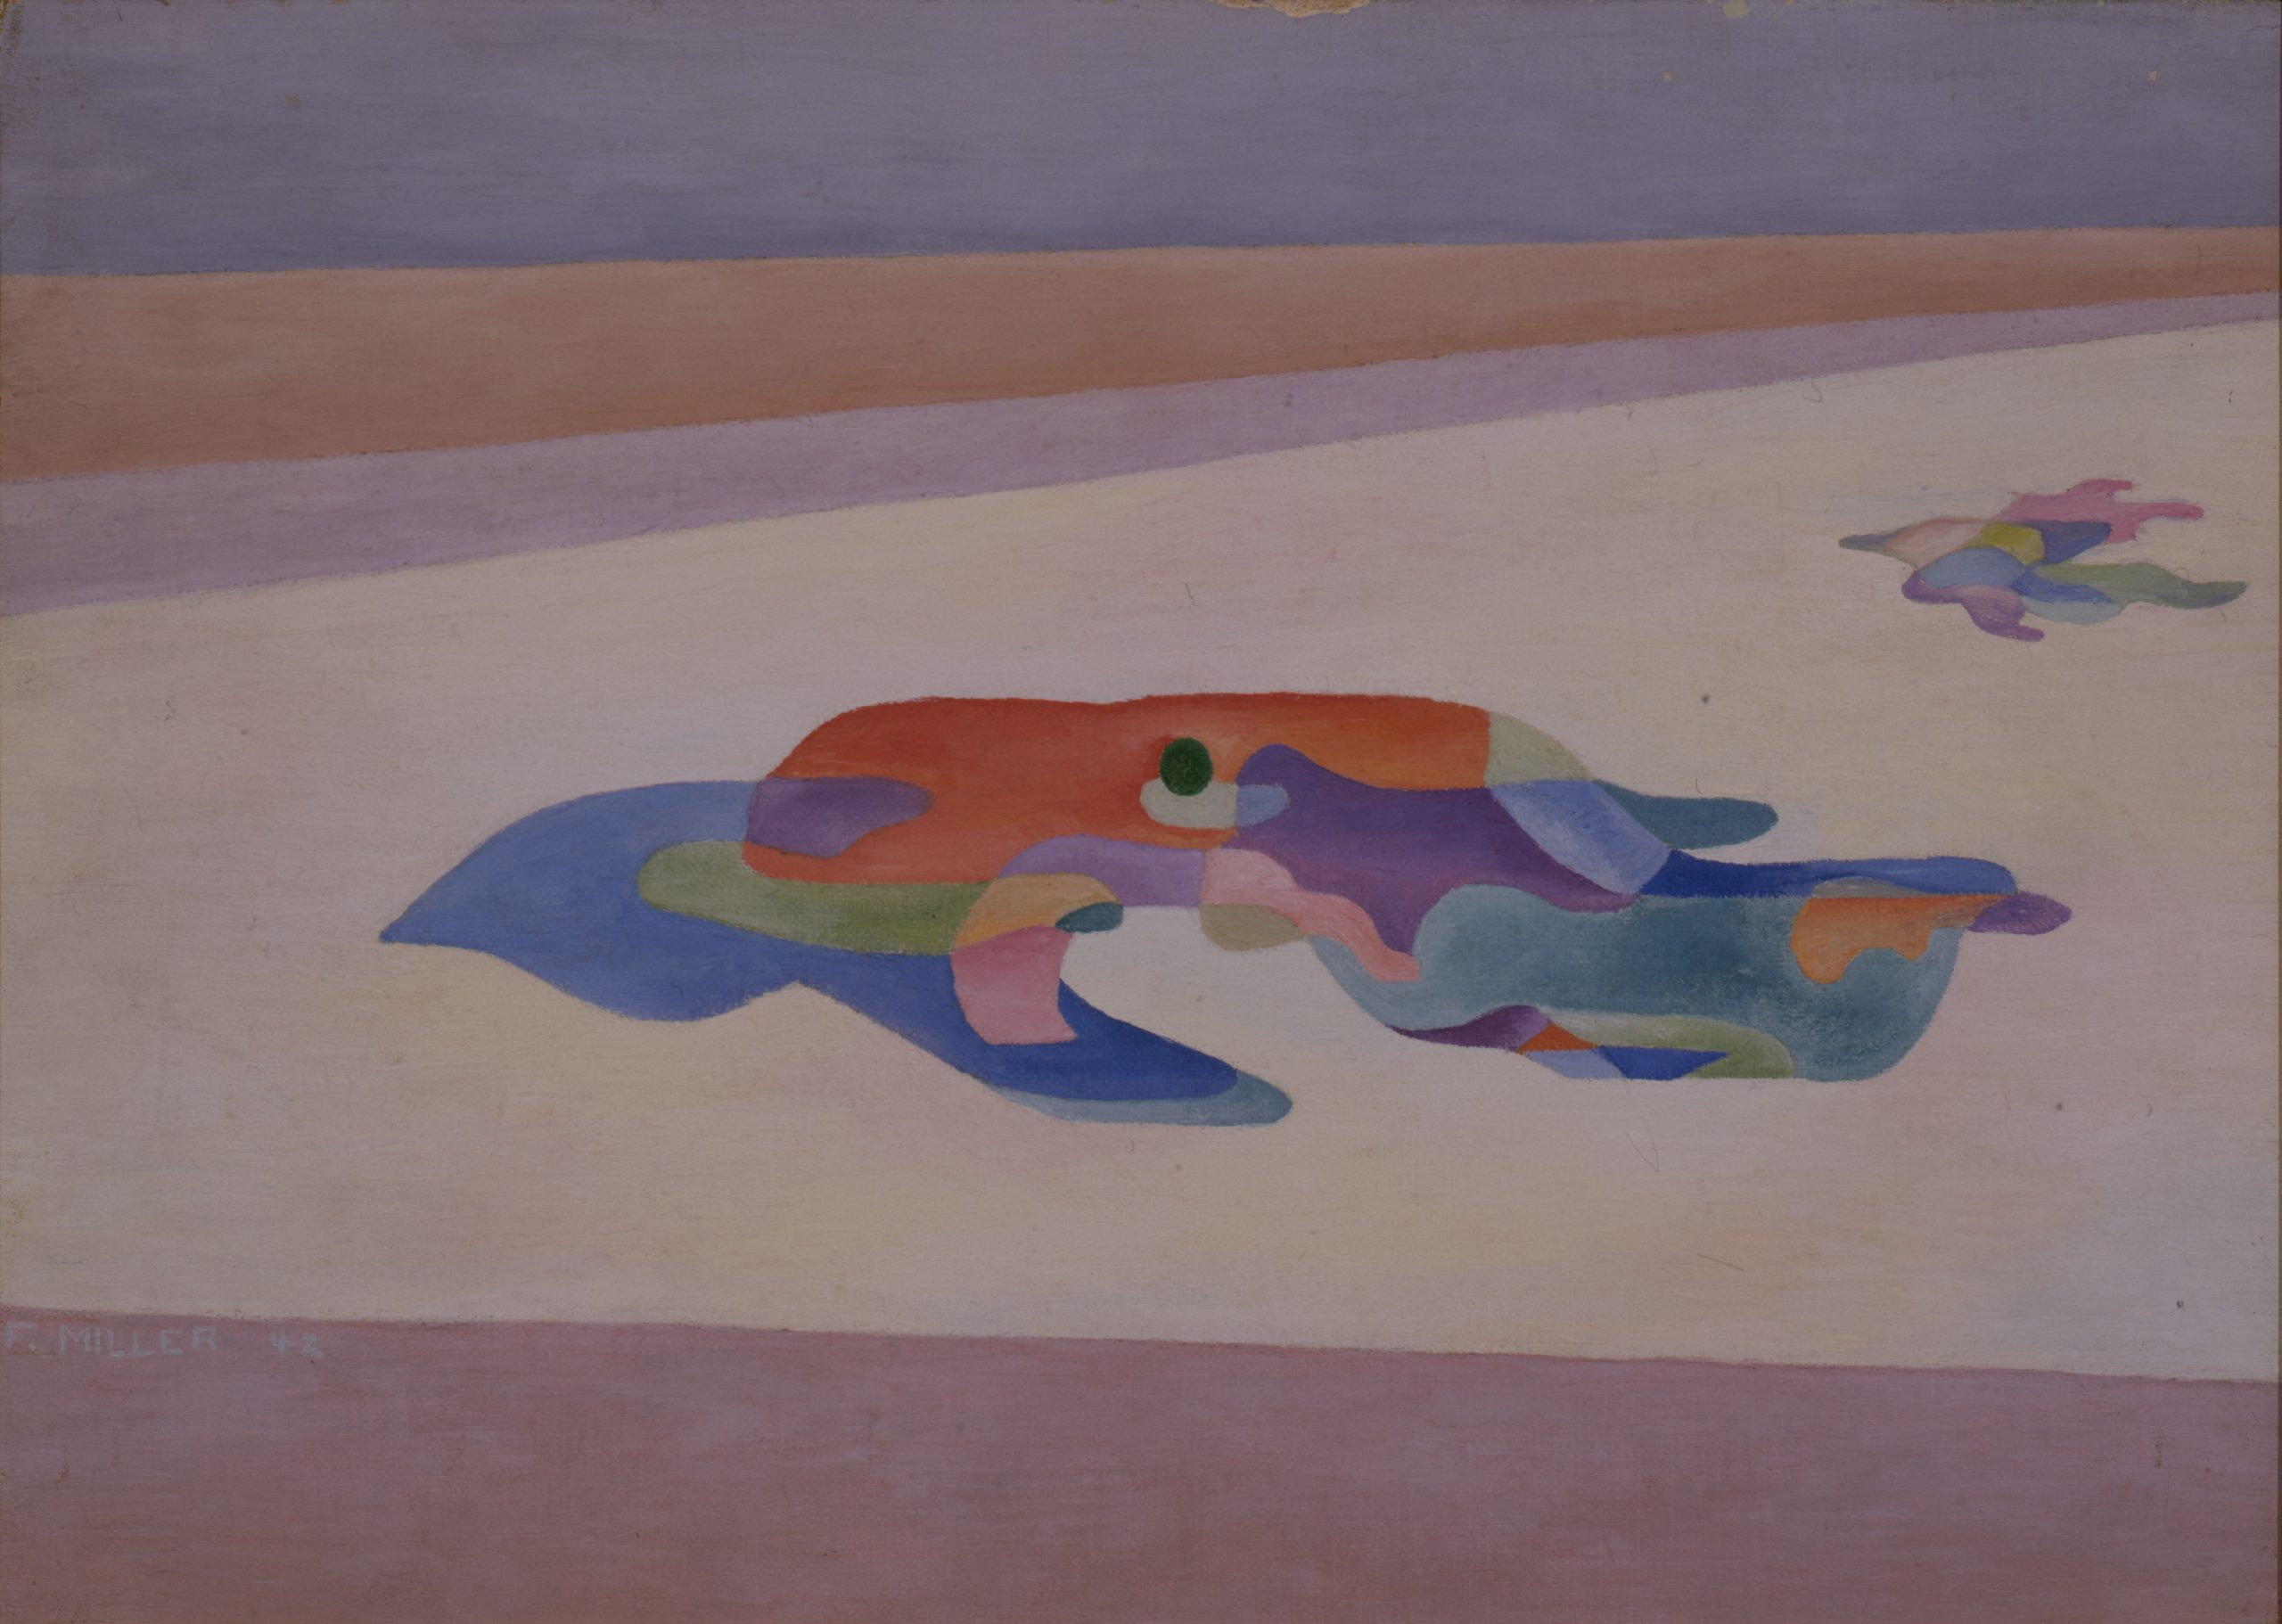 Florence Miller Pierce, Untitled (Descent), 1942, Oil on canvas board, Gift of the artist to the Raymond Jonson Collection